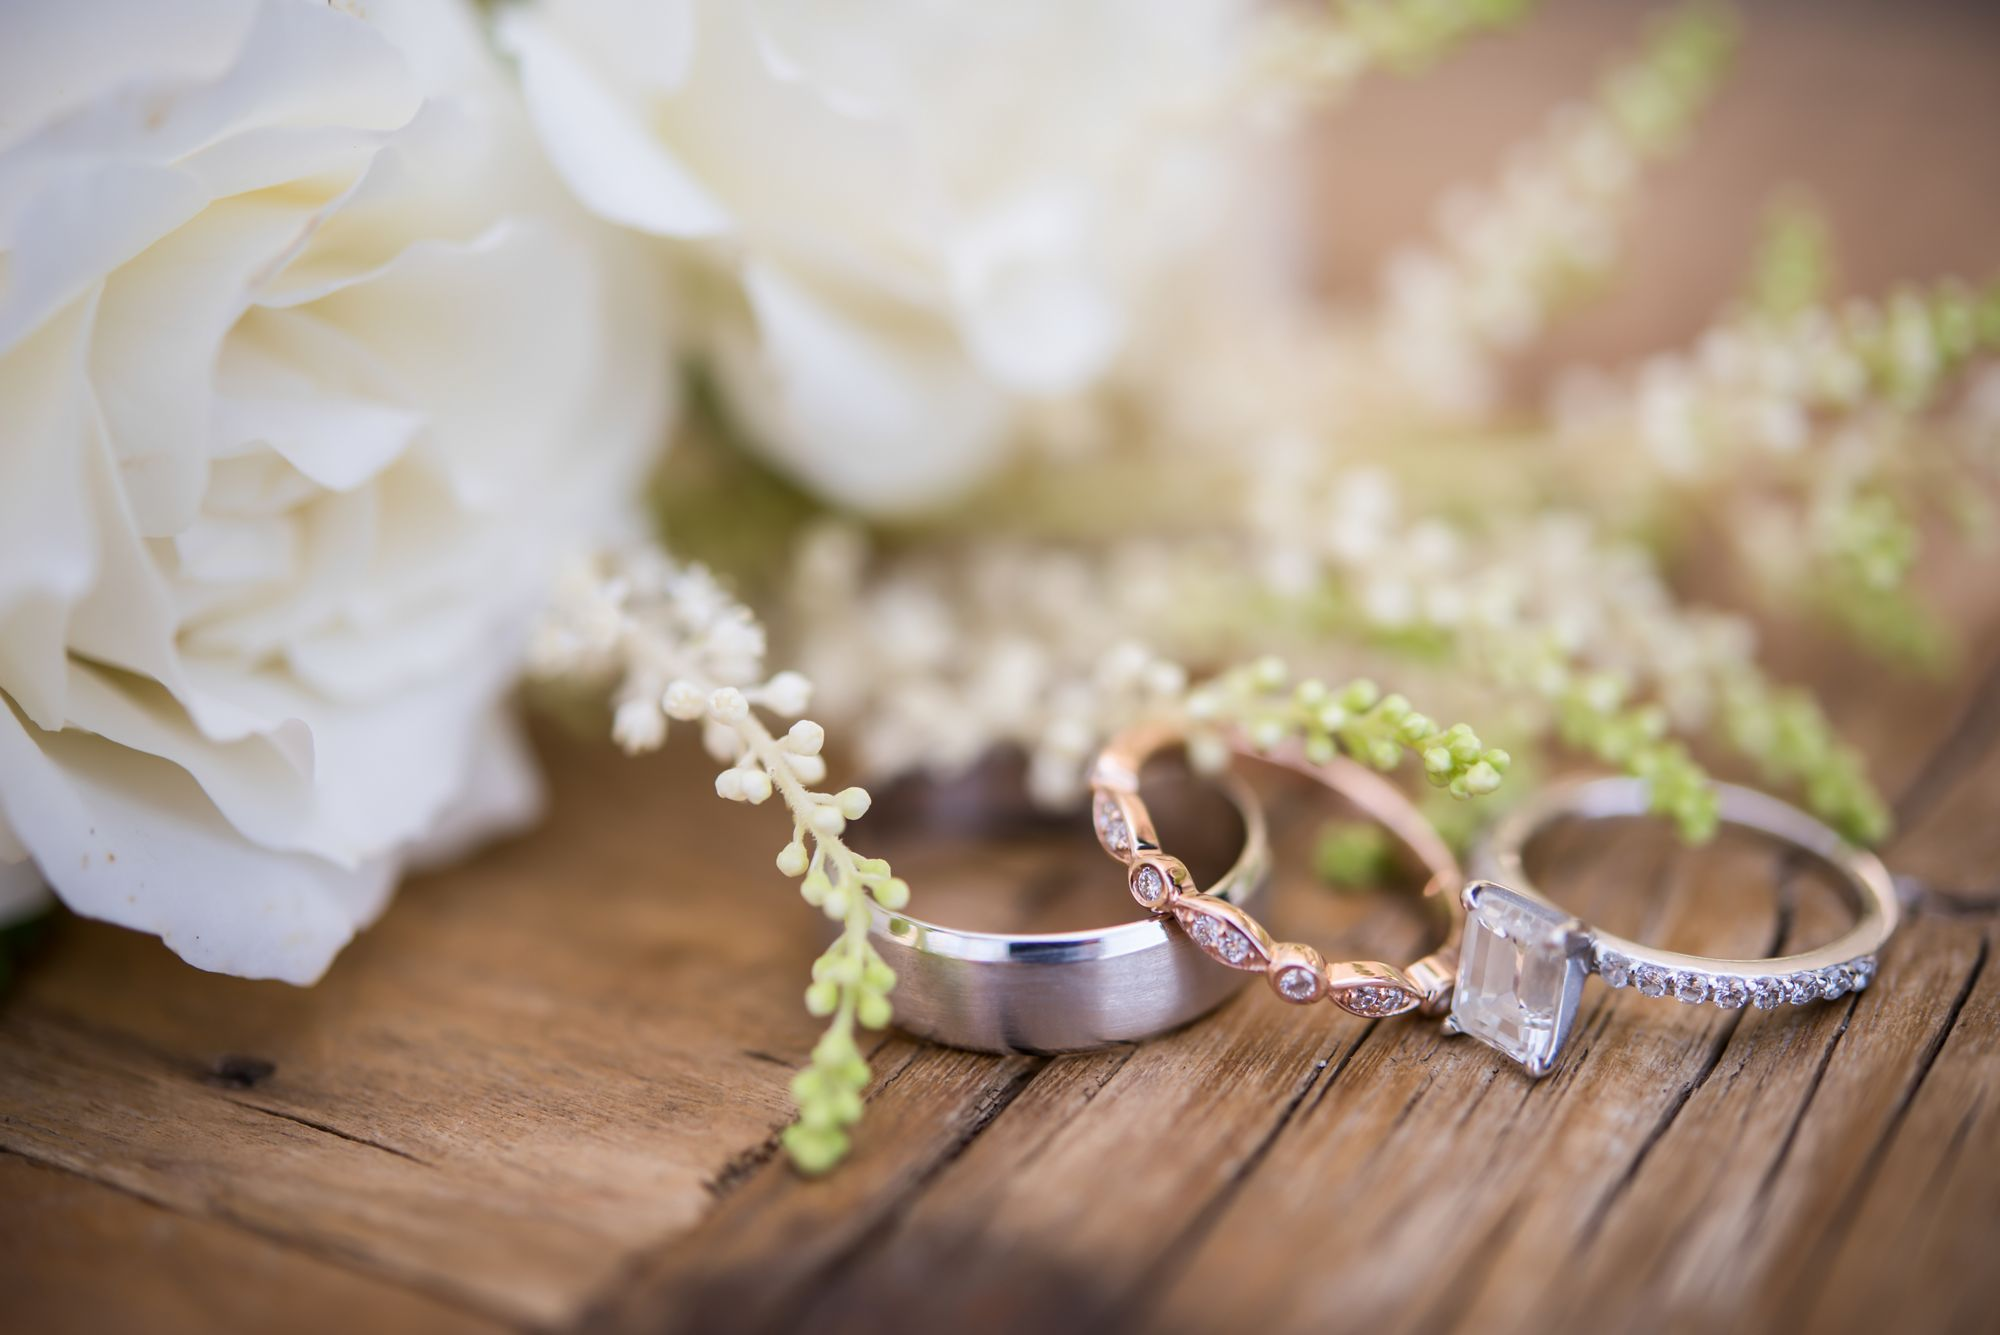 Lifestyle: Expensive weddings are more likely to collapse